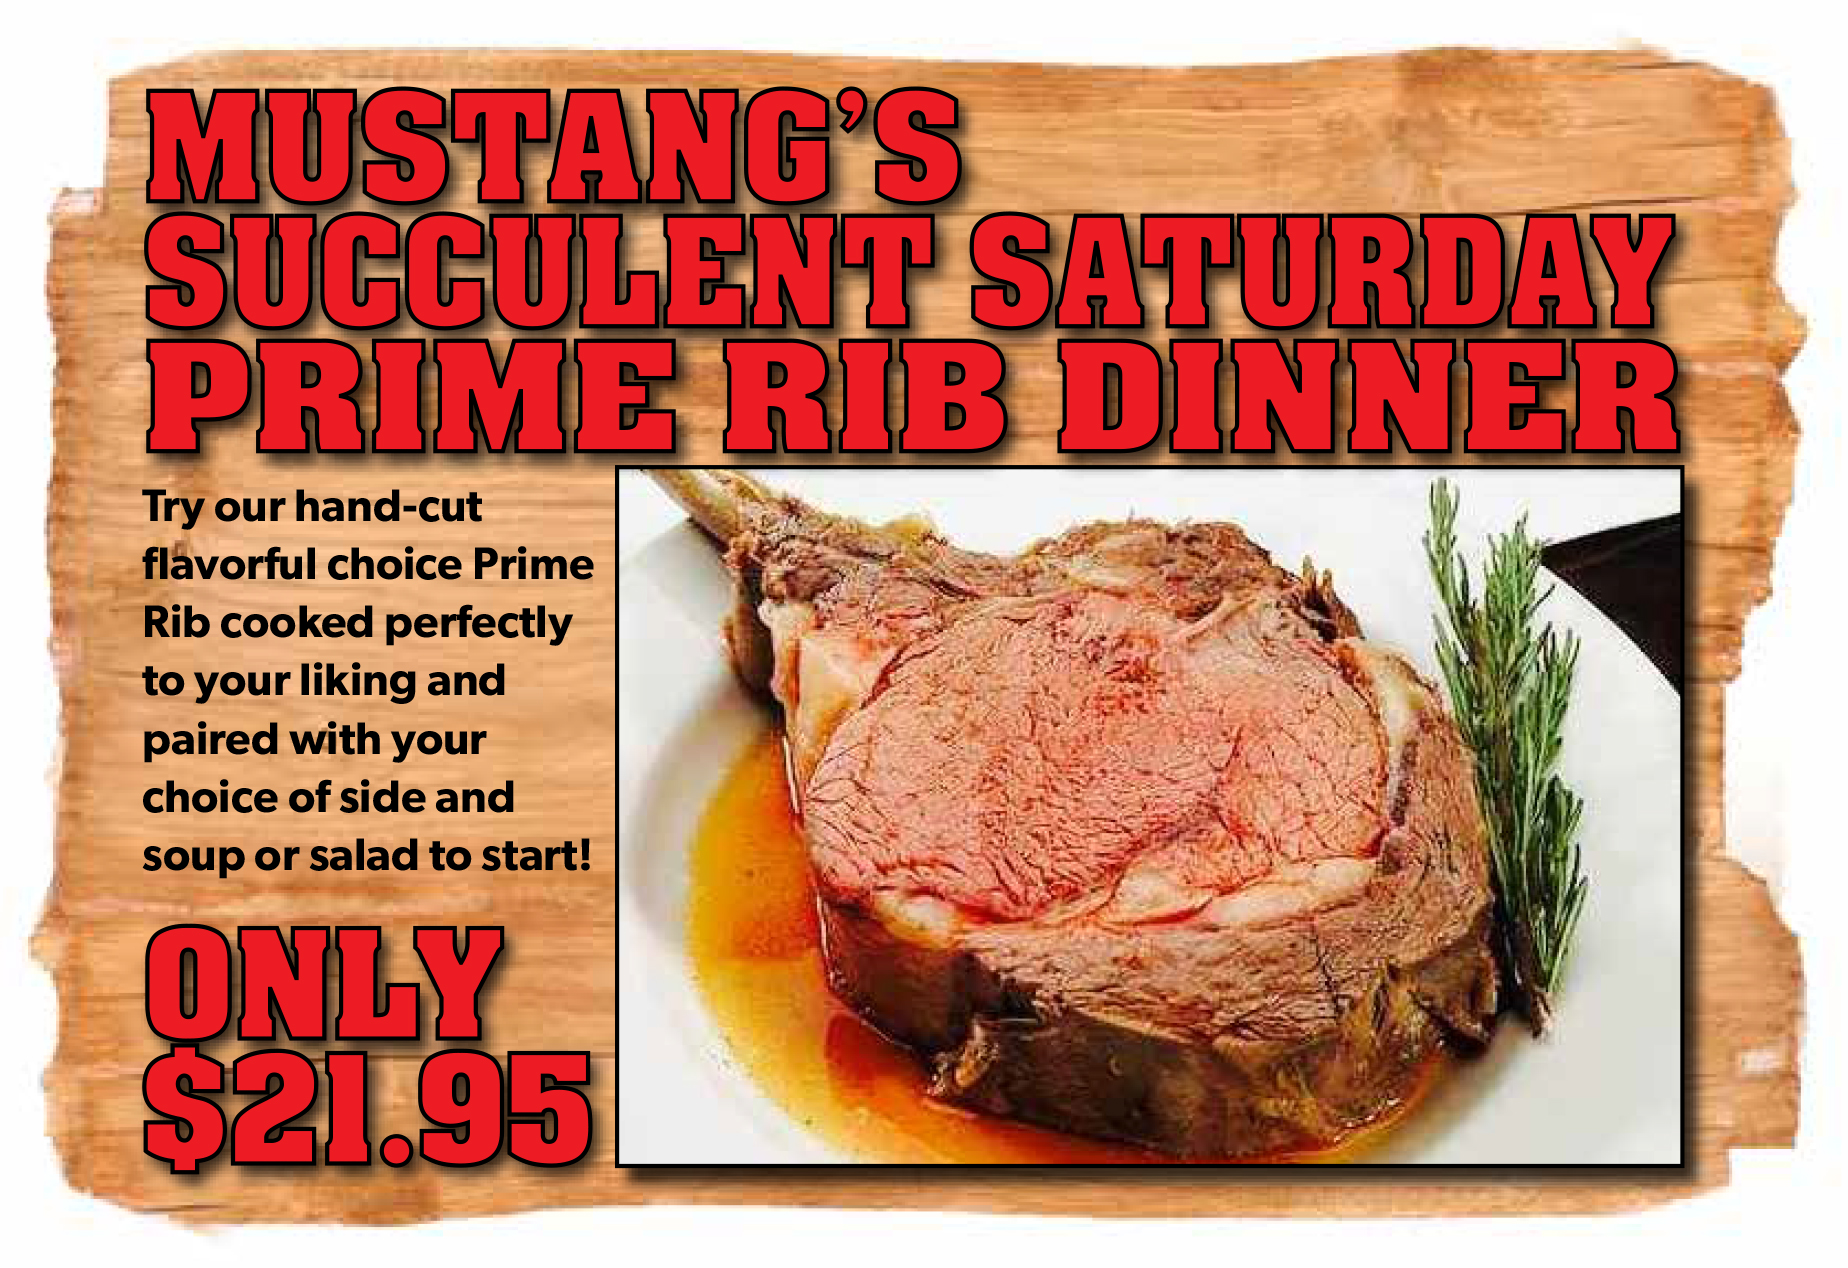 mustang's succlent saturday prime rib dinner. try our hand-cut flavorful choice prime rib cooked perfectly to your liking and paired with your choice of side and soup or salad to sart. Only $21.95